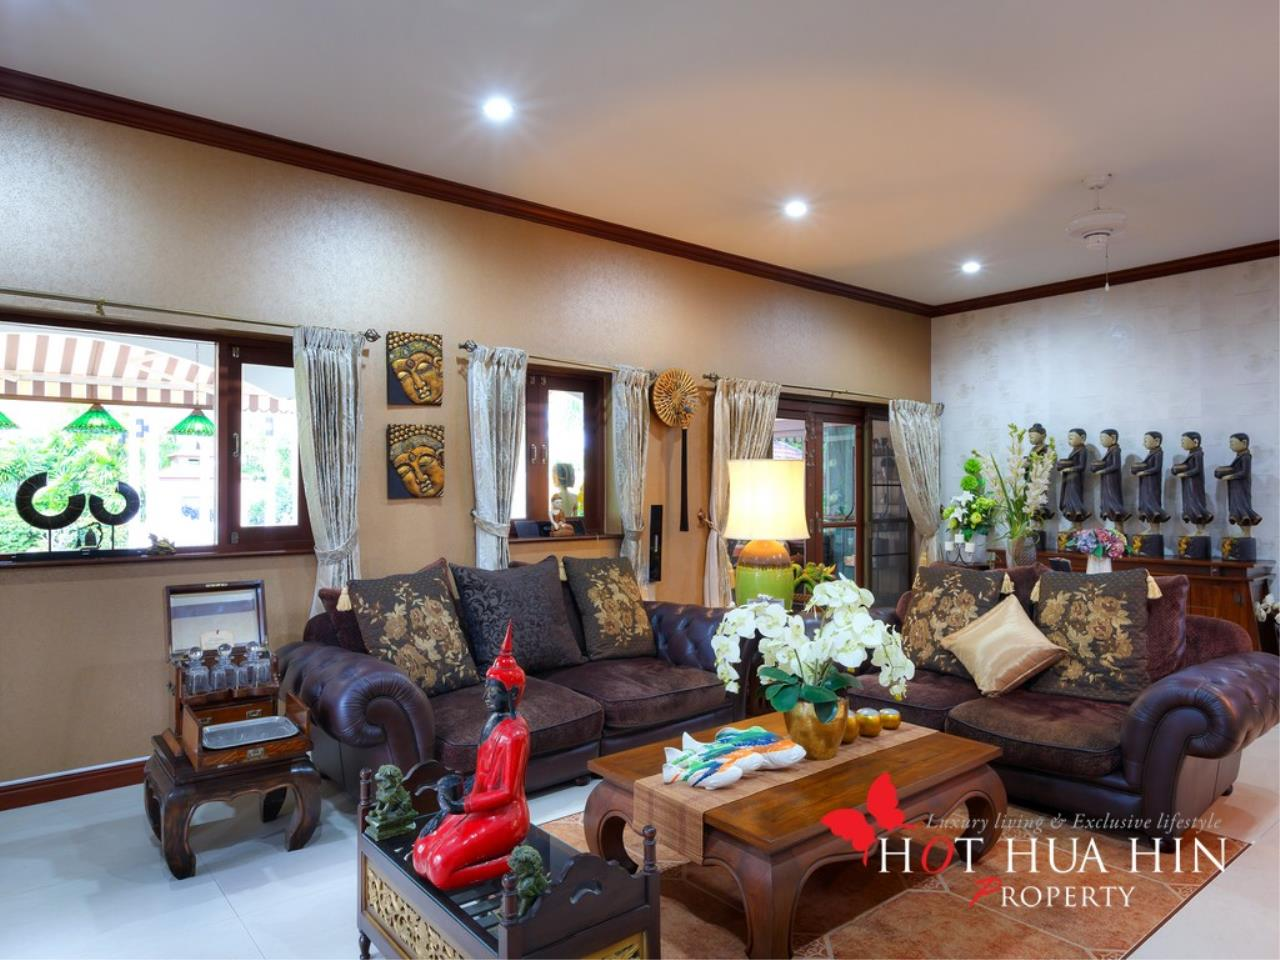 Hot Hua Hin Co. Ltd. Agency's Well Built Home With Stunning Gardens And Two Full Kitchens 10